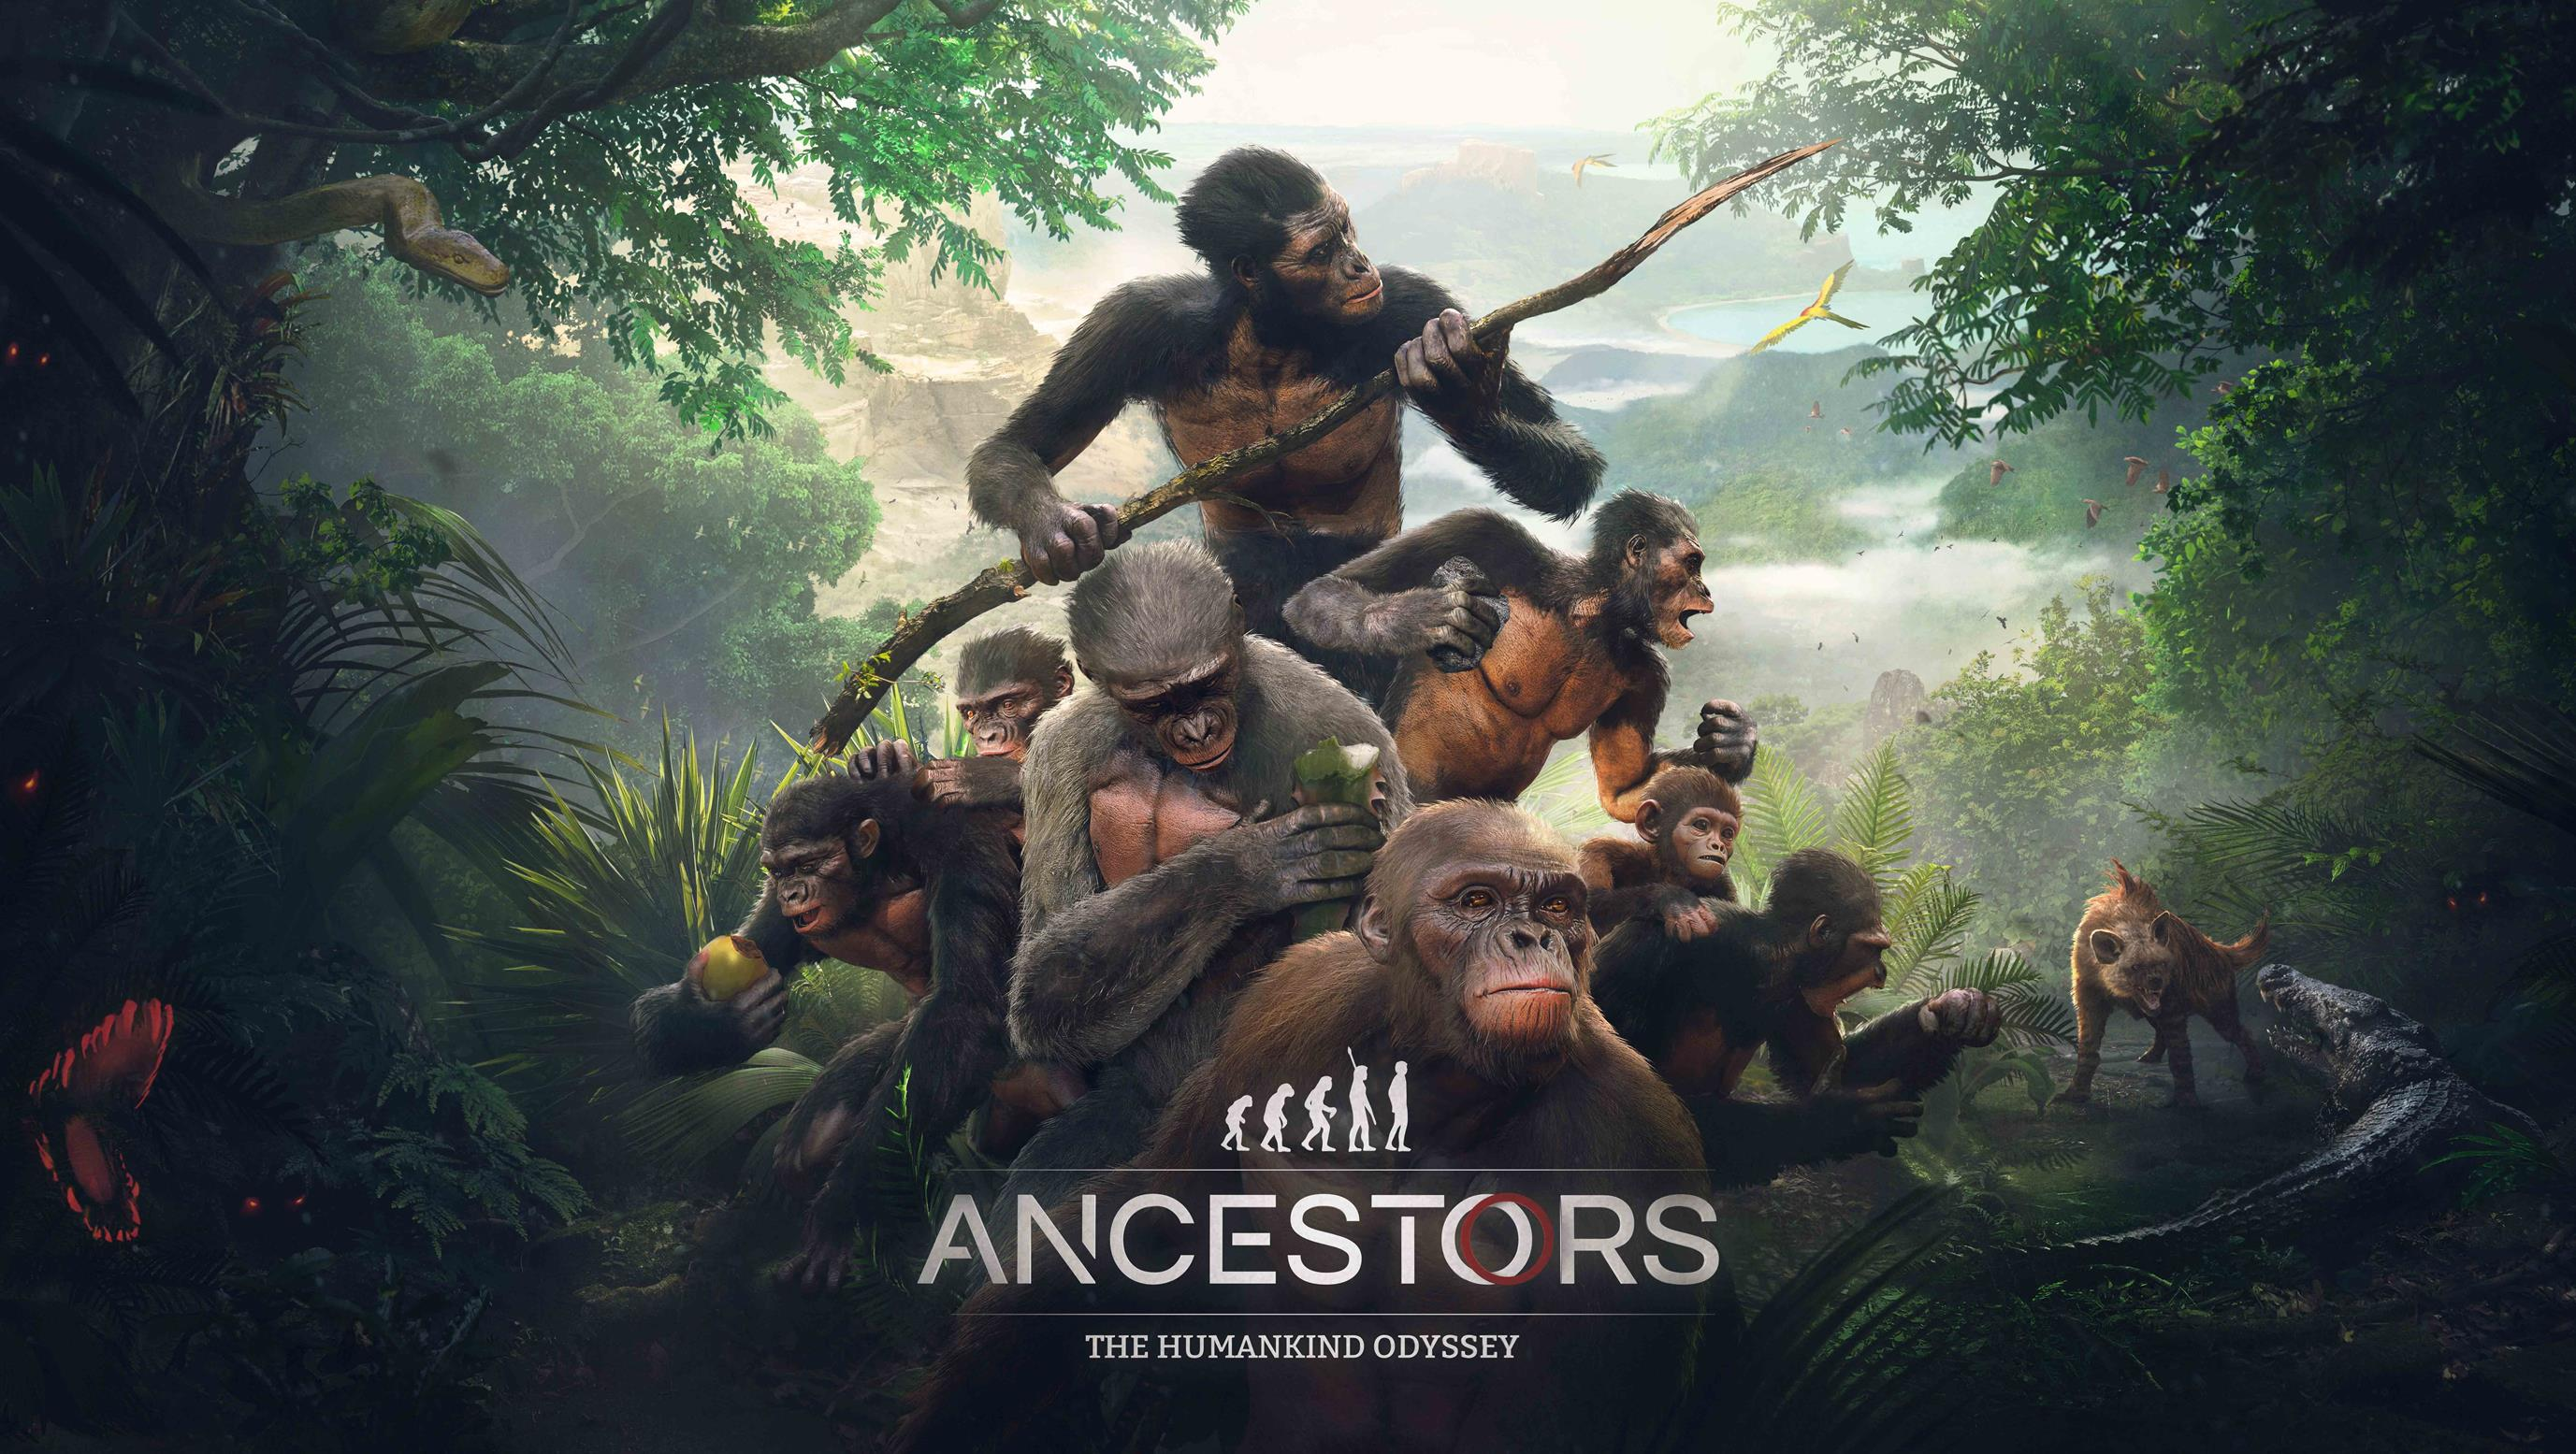 Ancestors: The Humankind Odyssey hits PC this August - VG247